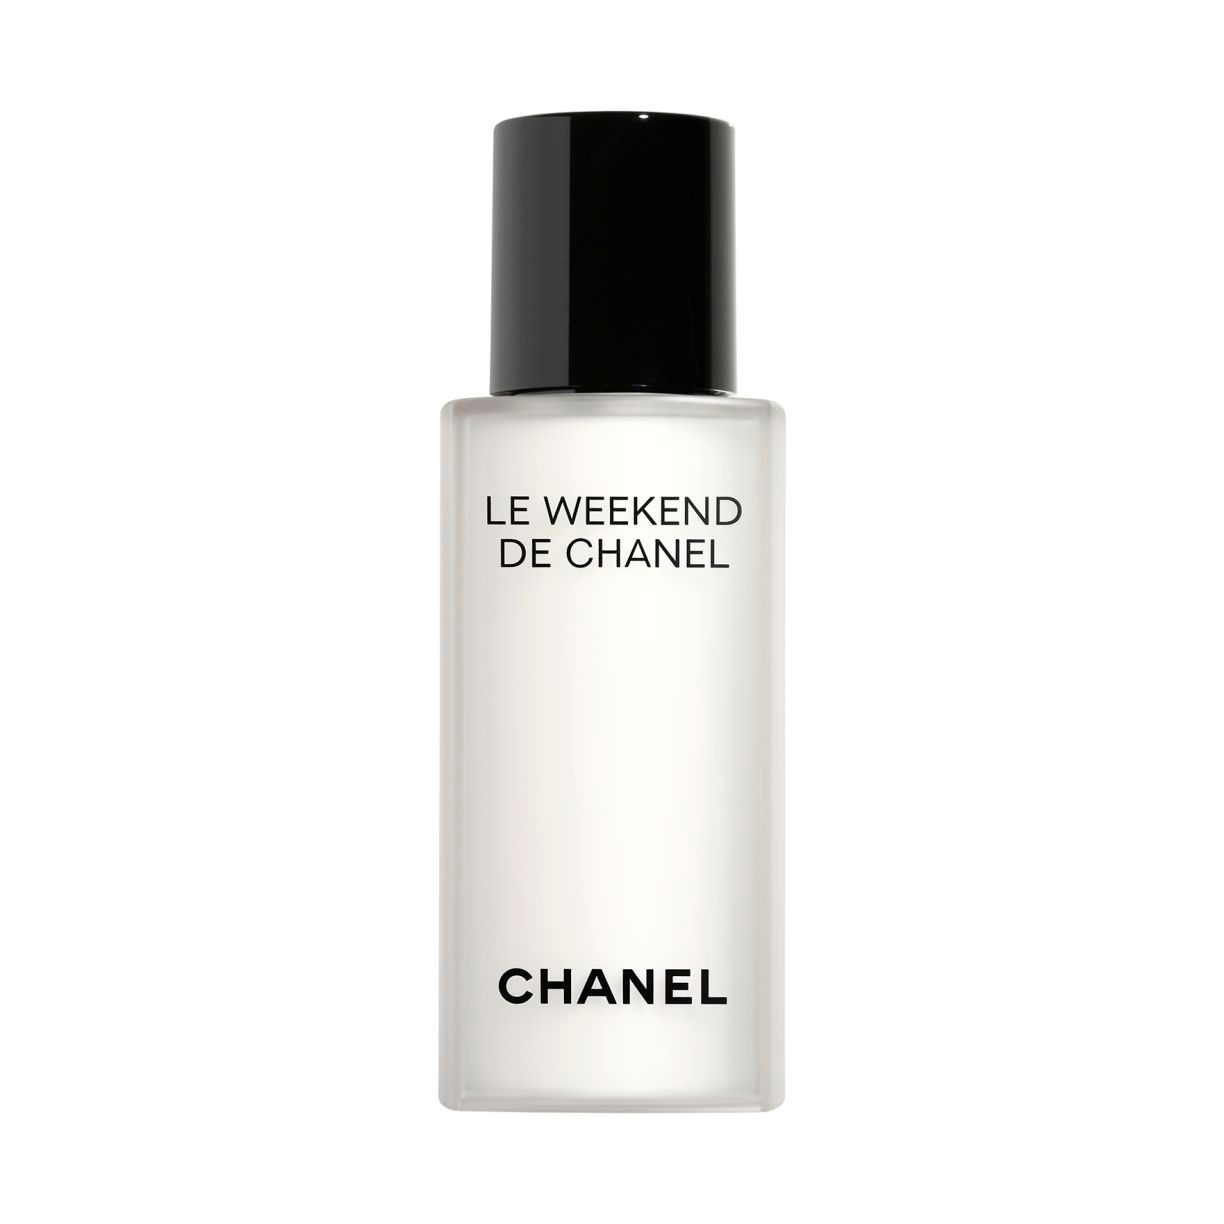 LE WEEKEND DE CHANEL RENOVAR 50ml